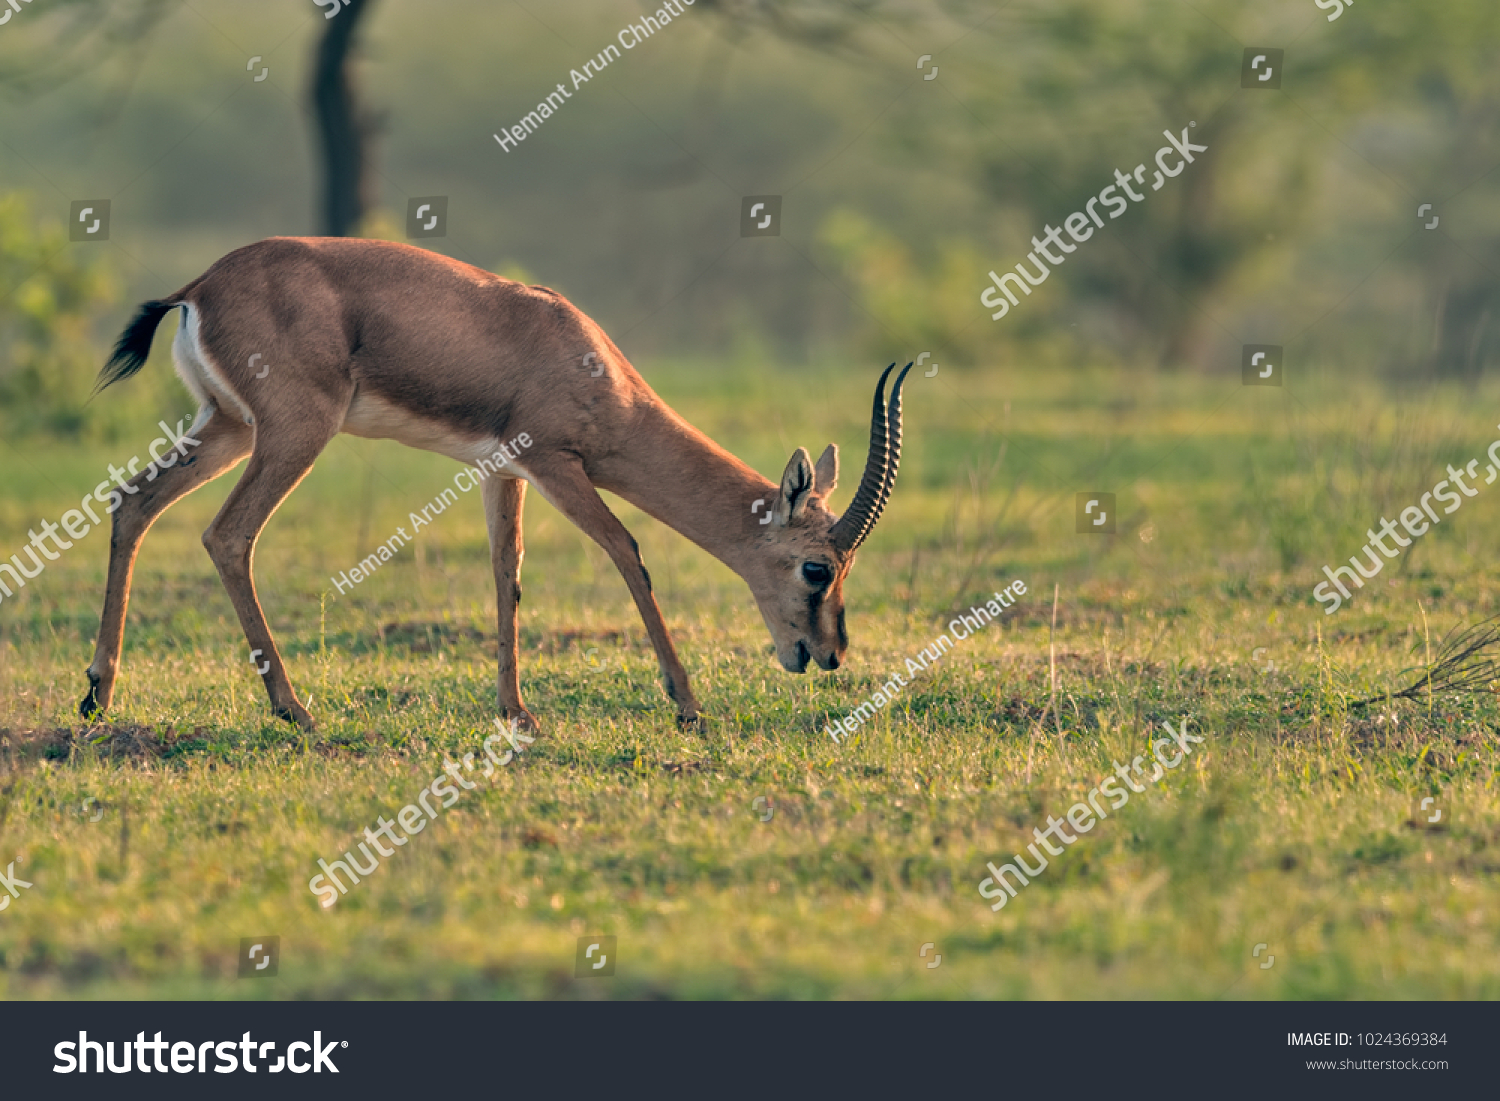 The chinkara, also known as the Indian… Stock Photo